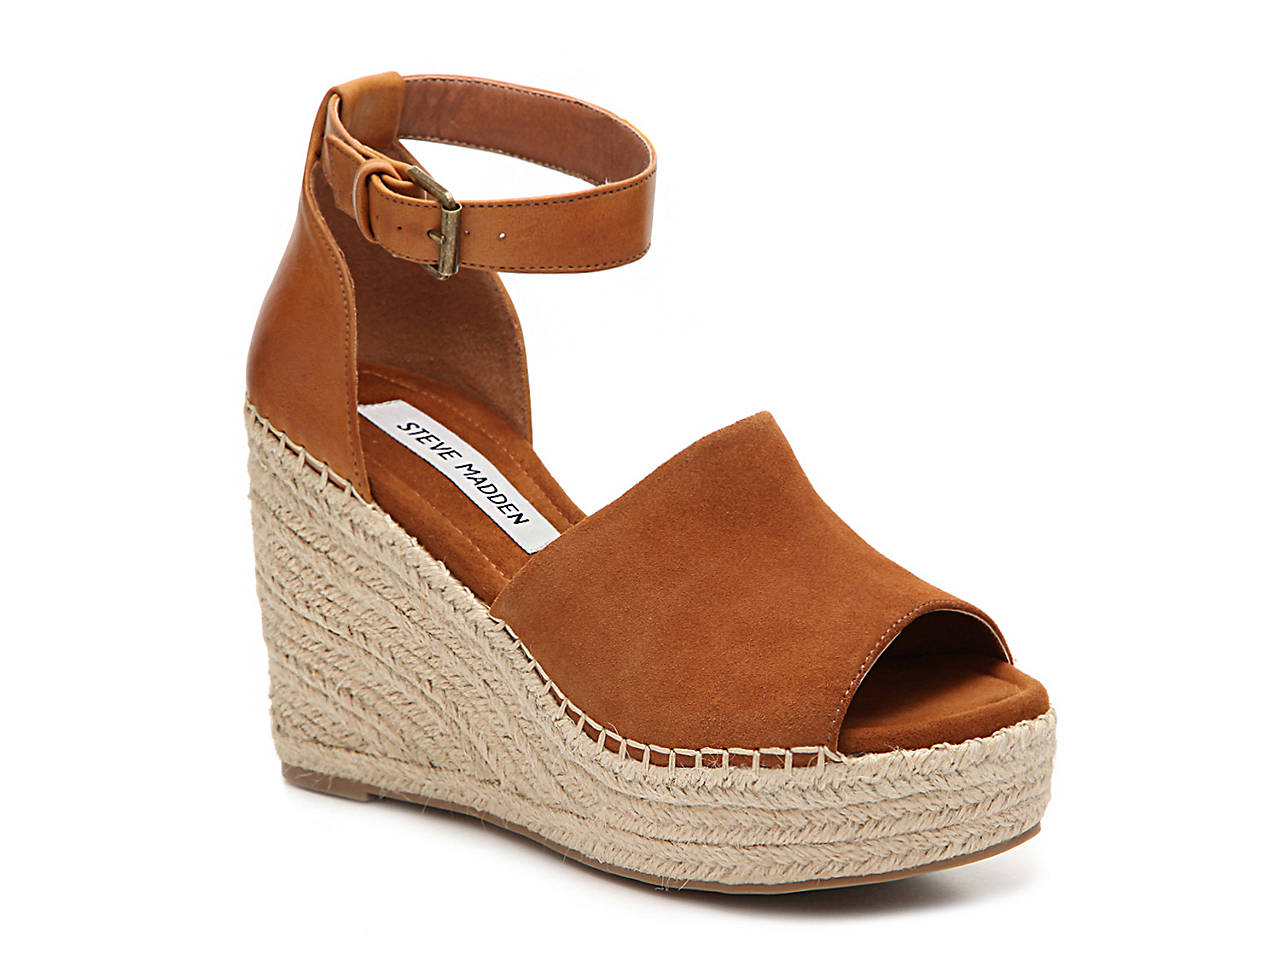 ff35bbccb32 Steve Madden Jaylen Wedge Sandal Women s Shoes